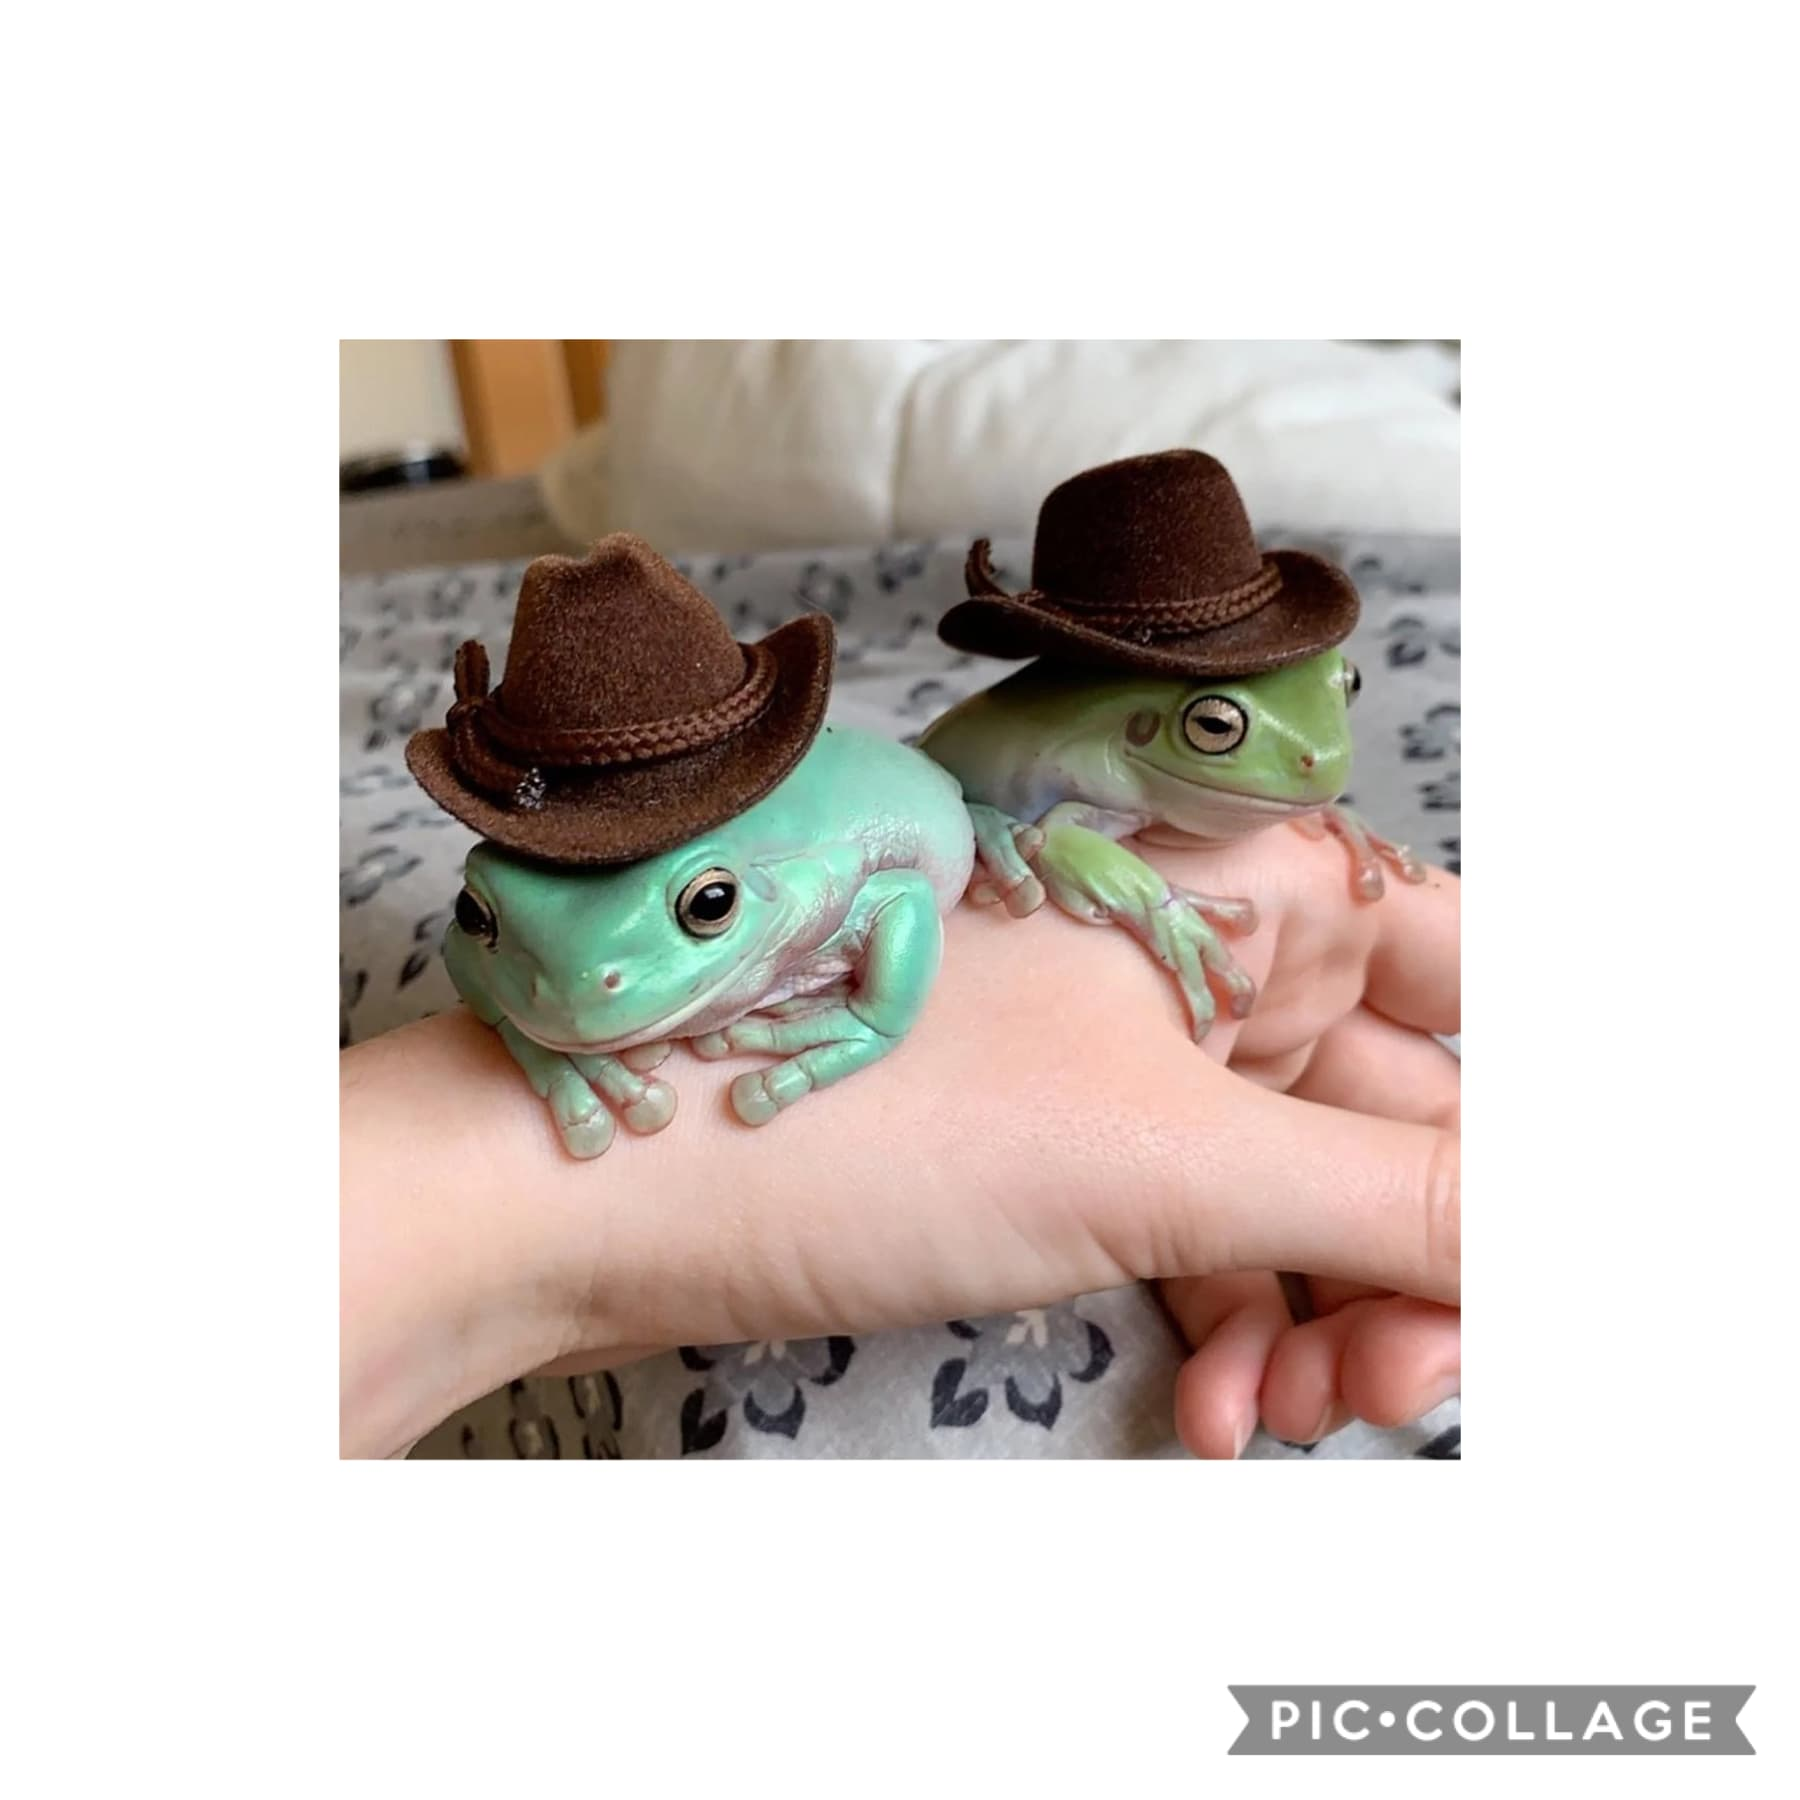 handsome lil cowboys   I played Minecraft with Friend Boy n some of his friends n it was a blast ngl They were joking about him and I simping for each other n we both just went ??? externally  I mean they're right abt me but- 👀